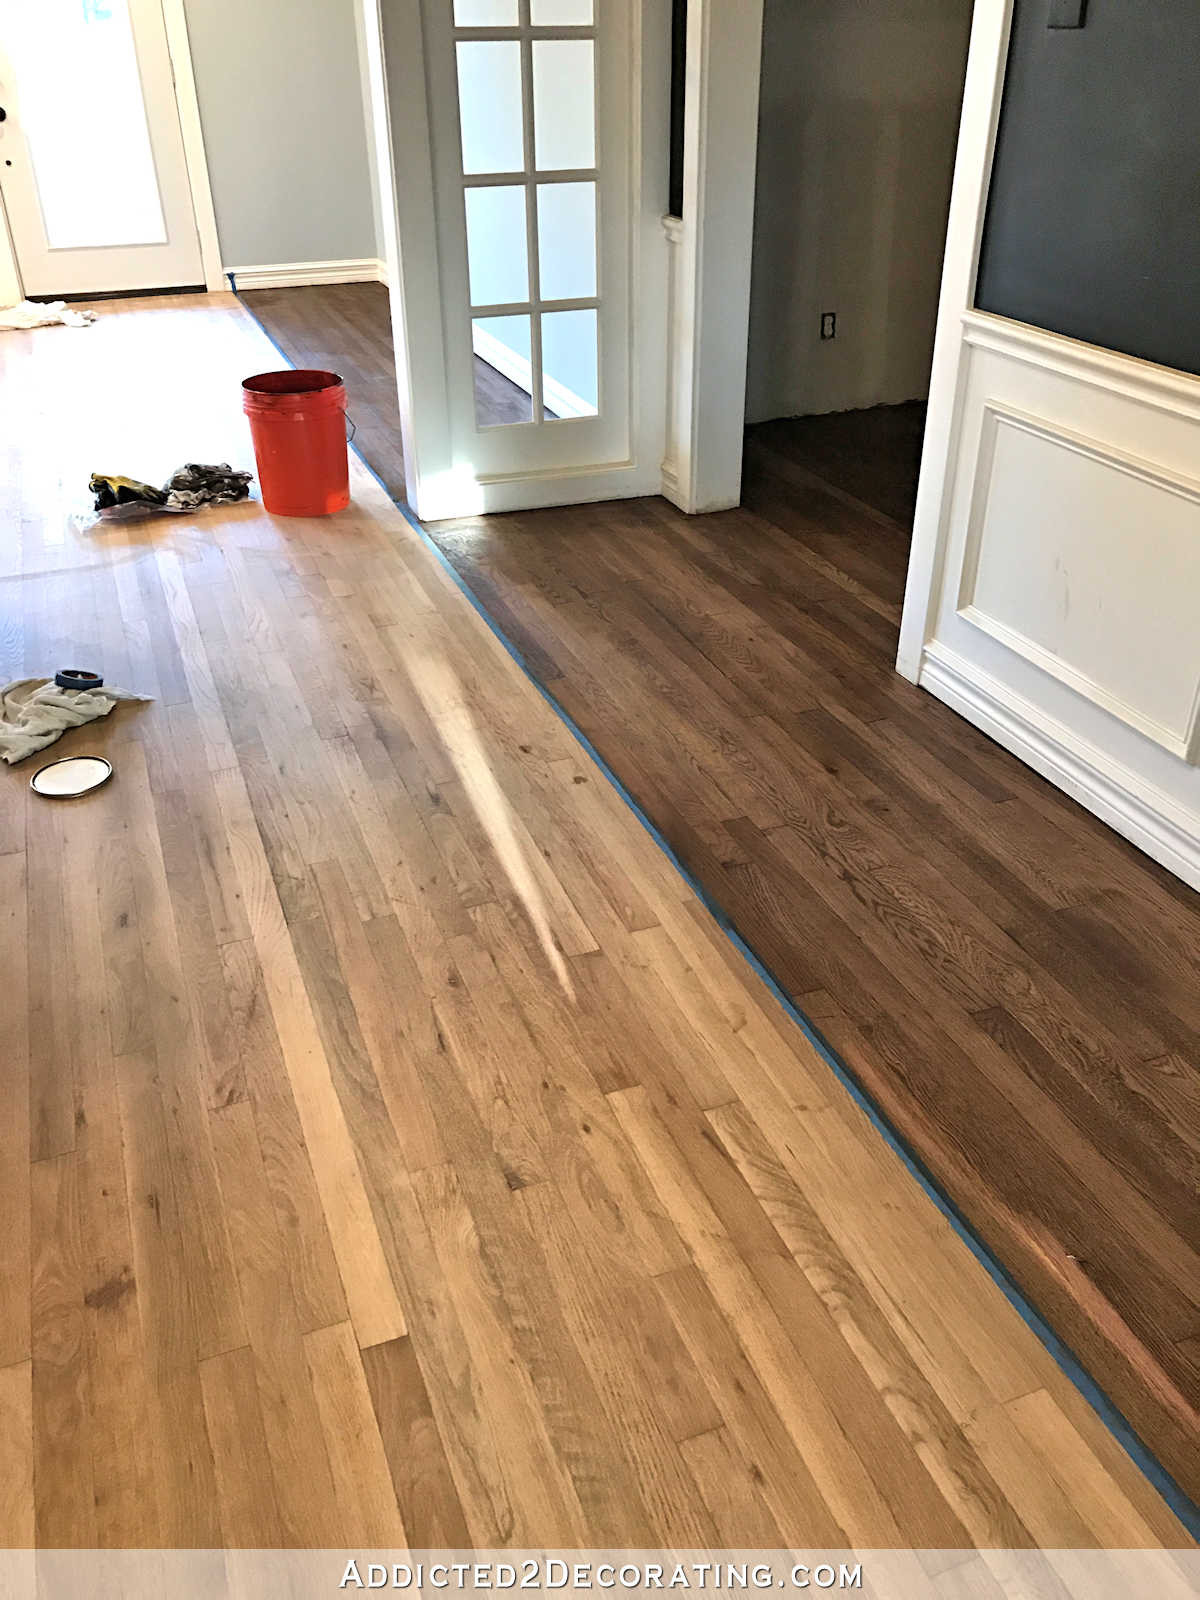 hardwood floor stain colors oak of adventures in staining my red oak hardwood floors products process regarding staining red oak hardwood floors 6 stain on partial floor in entryway and music room